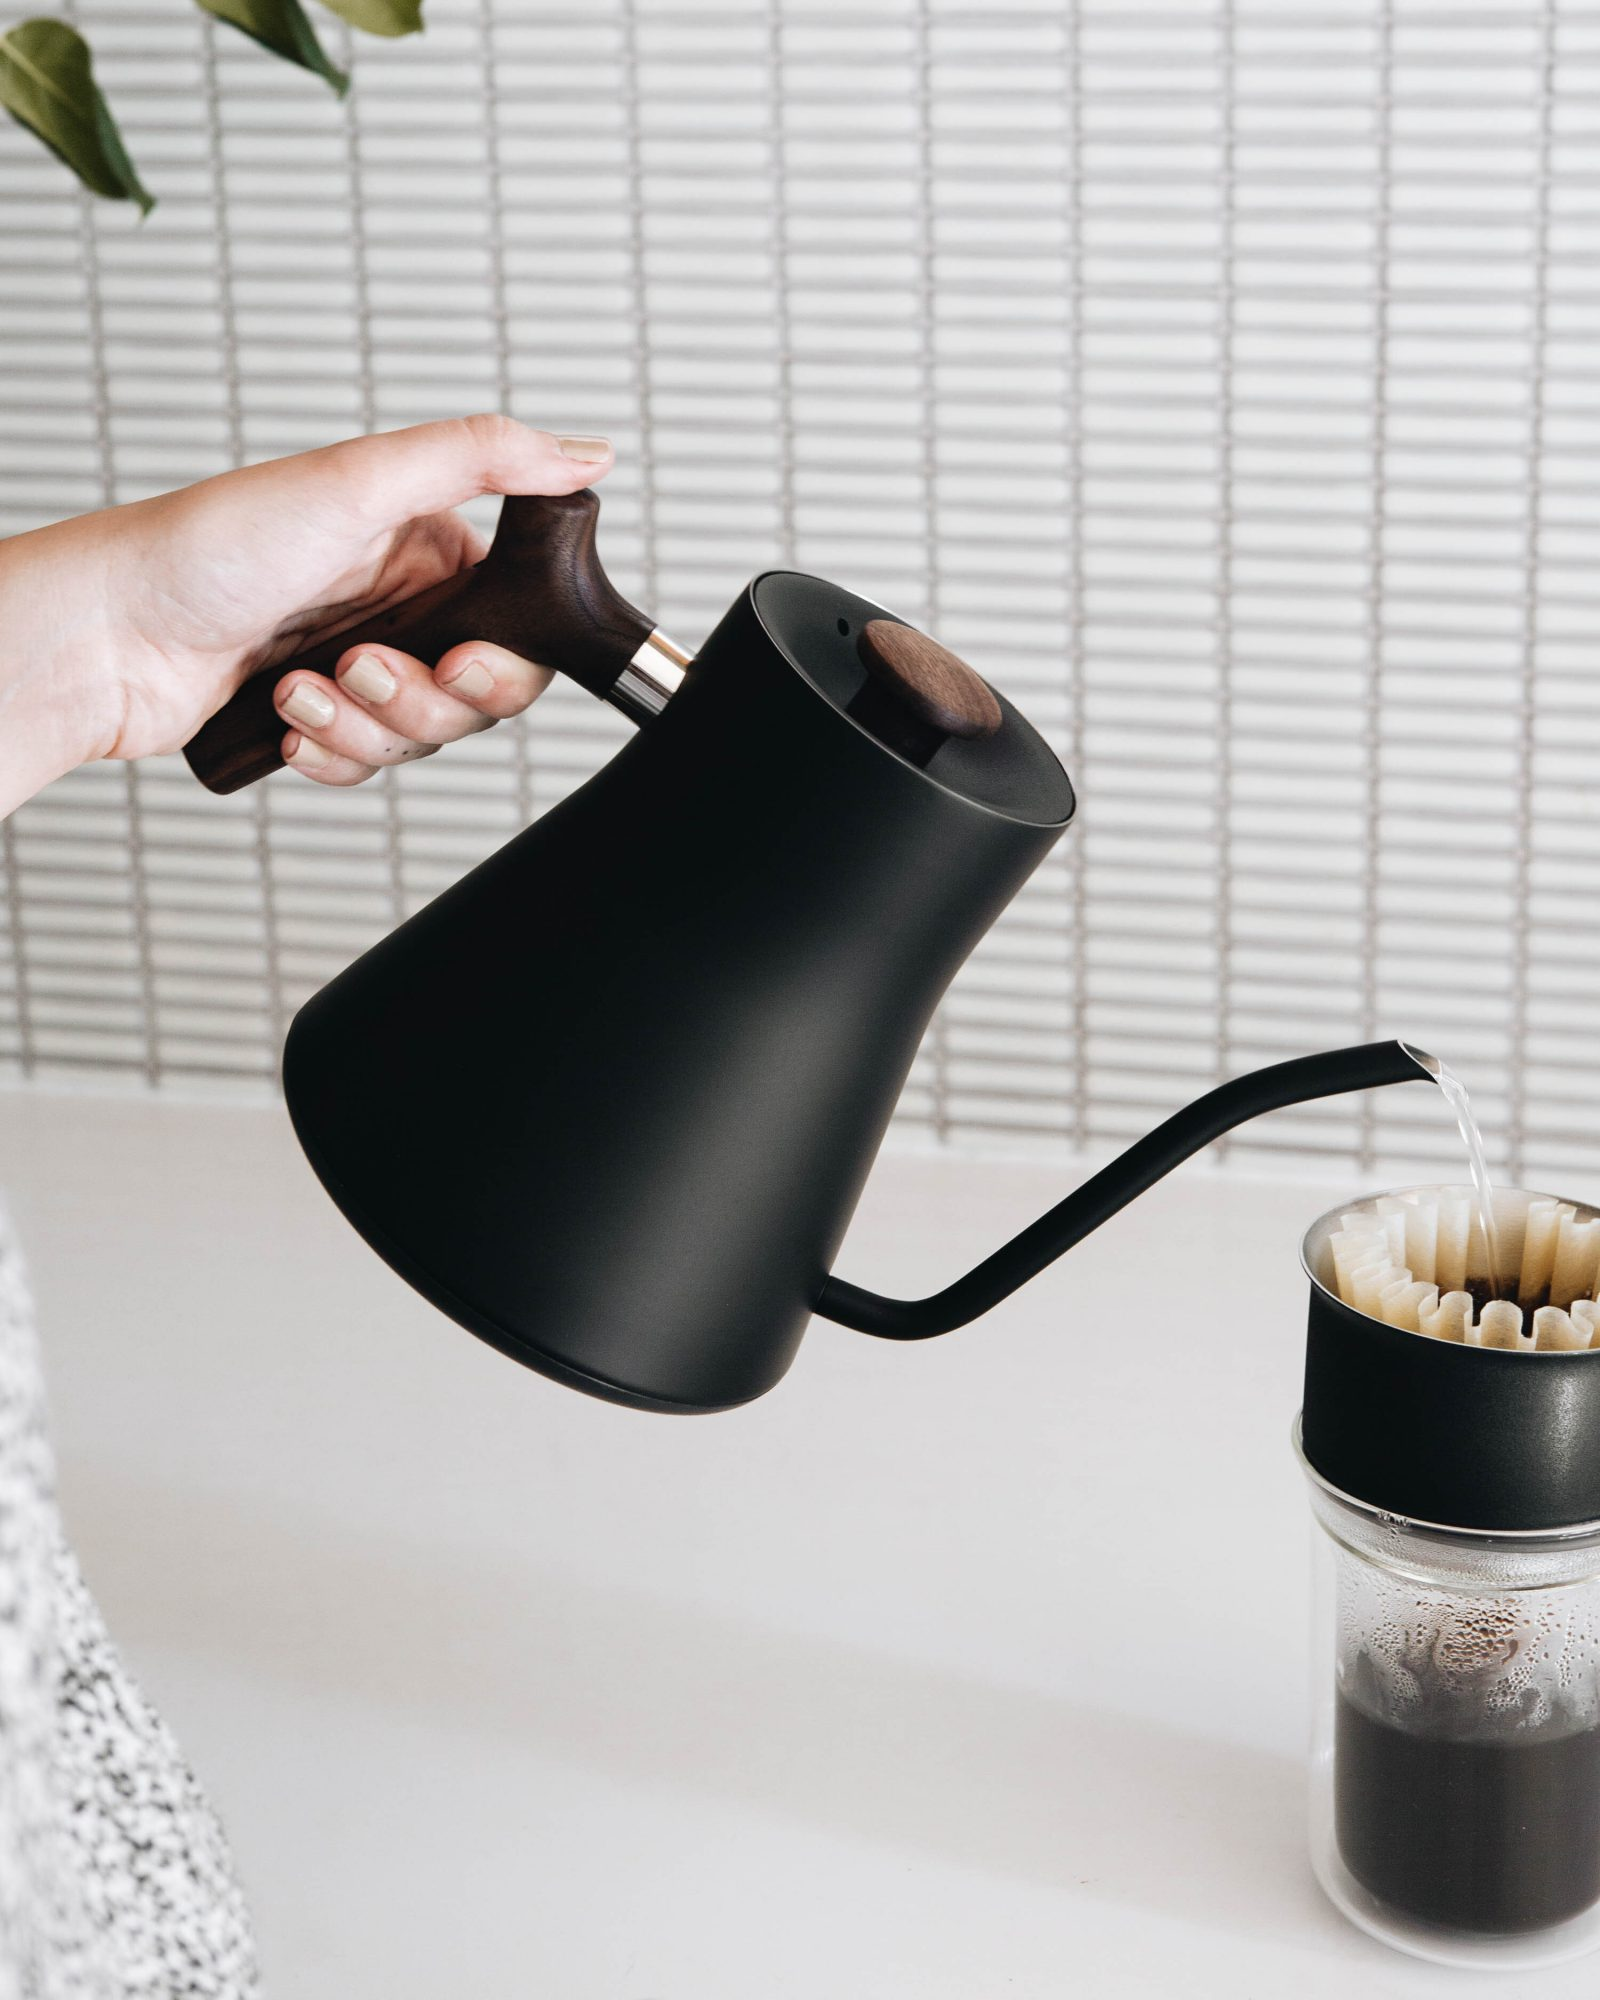 black gooseneck kettle pouring water into pourover coffee maker